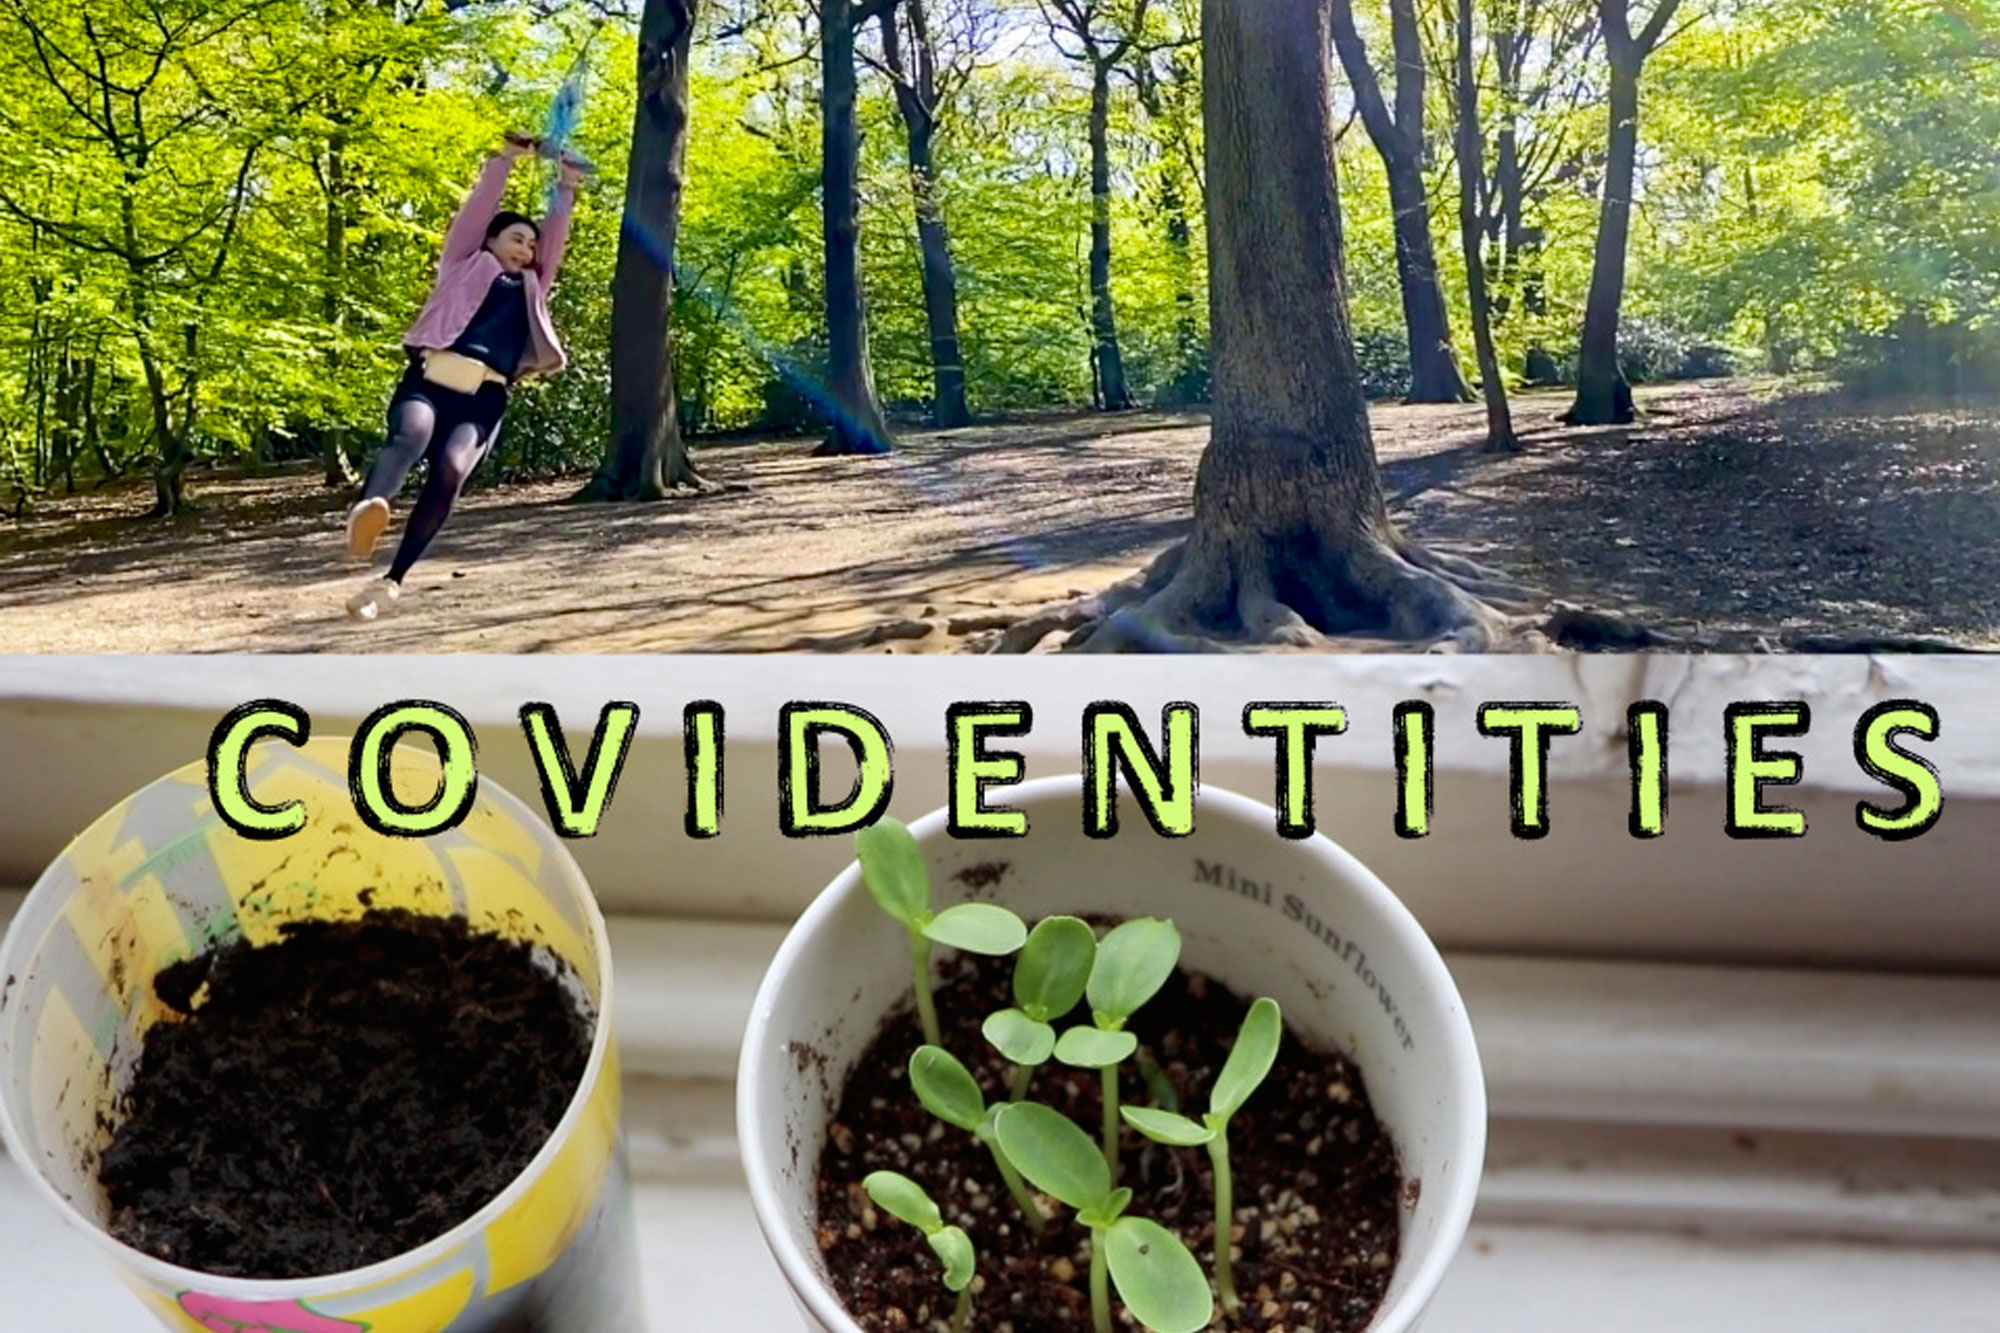 Covidentities poster featuring image of girl swinging round a tree in forest and foregrounded potted plants on window sill